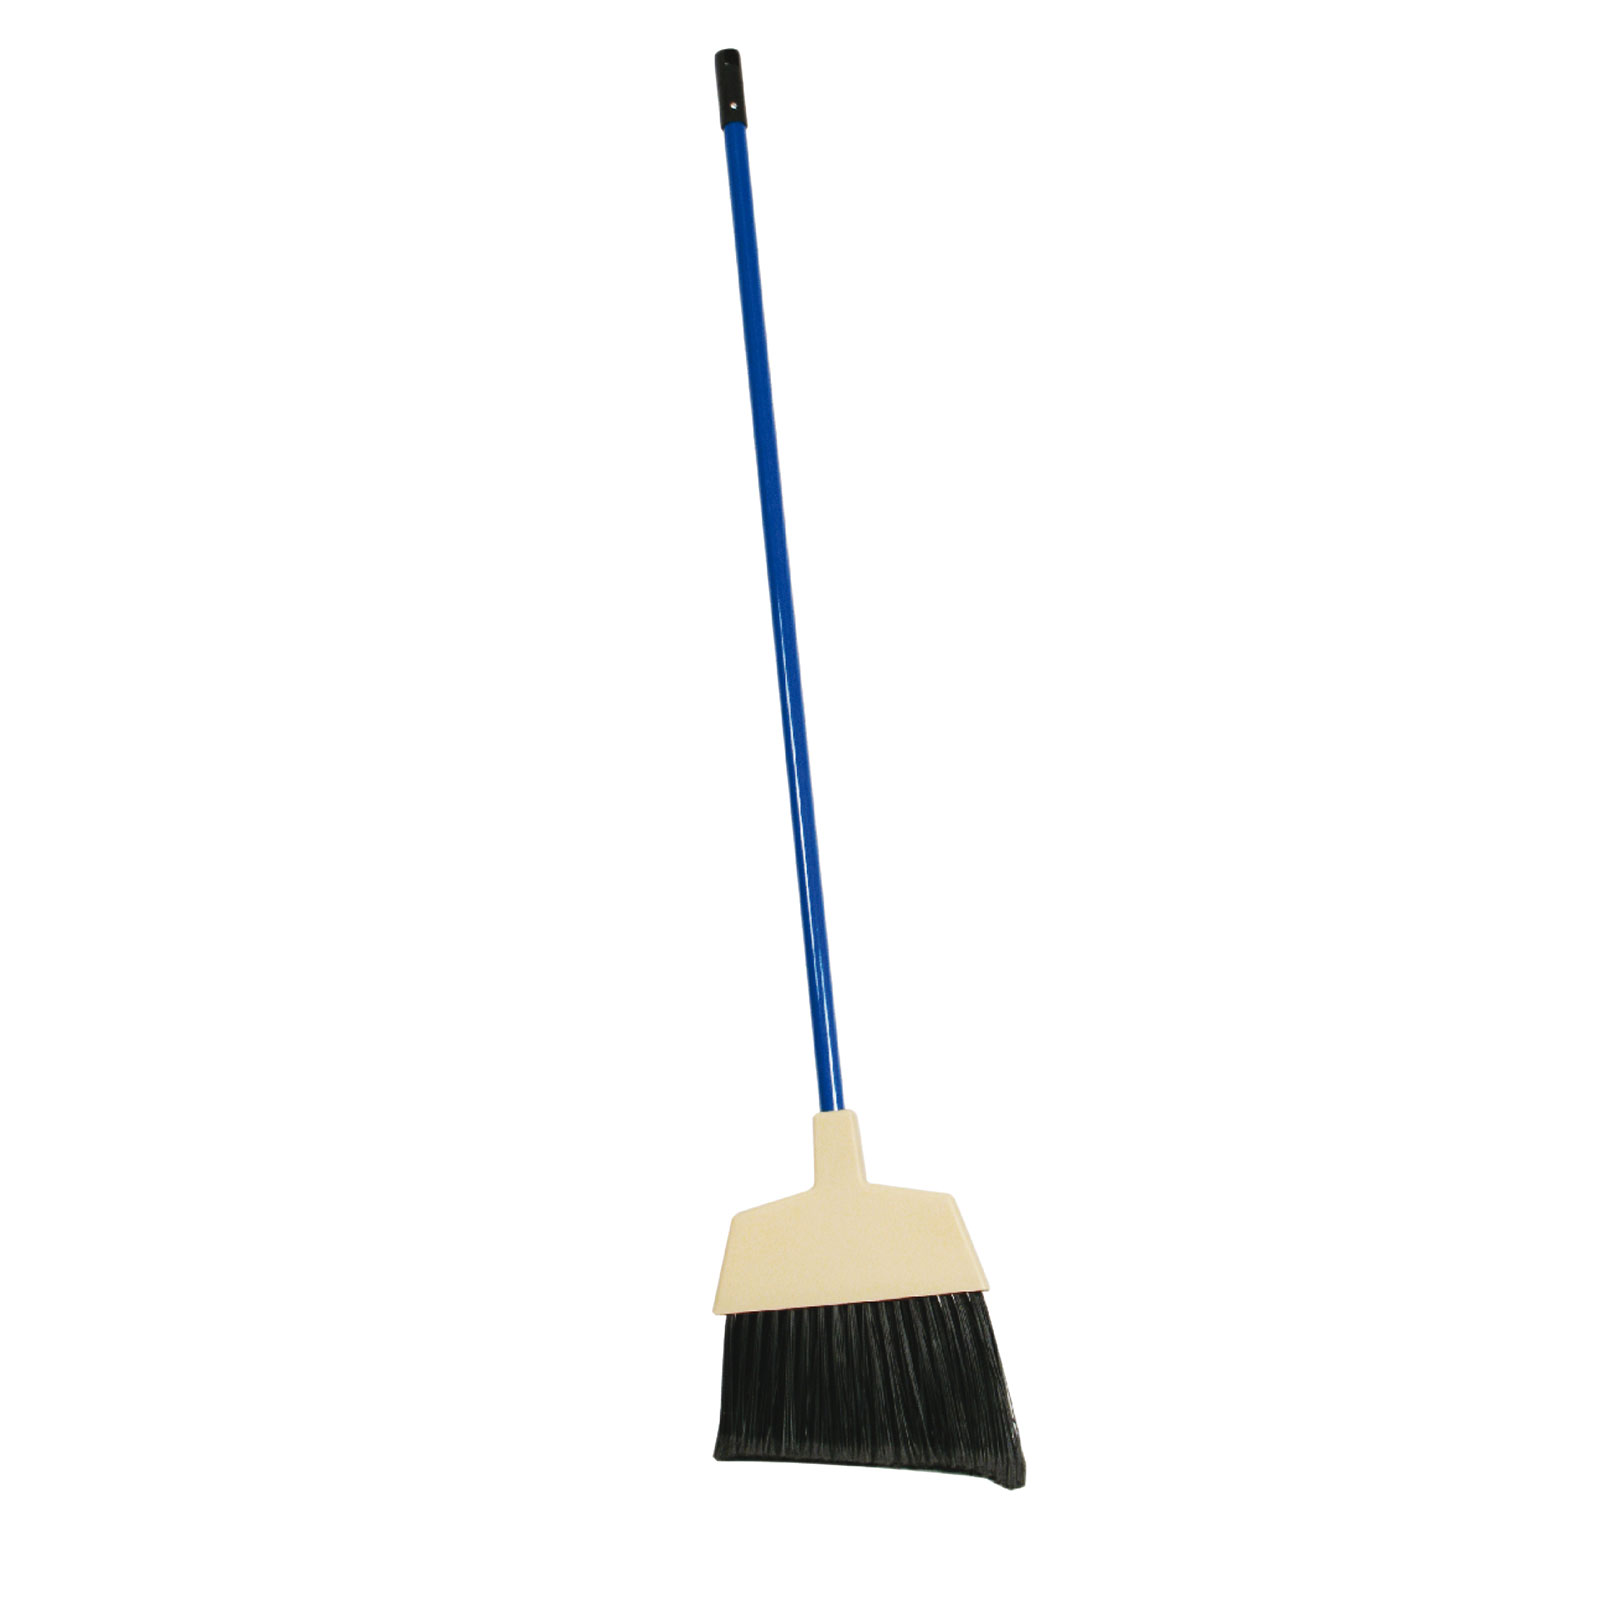 Winco BRM-60L broom